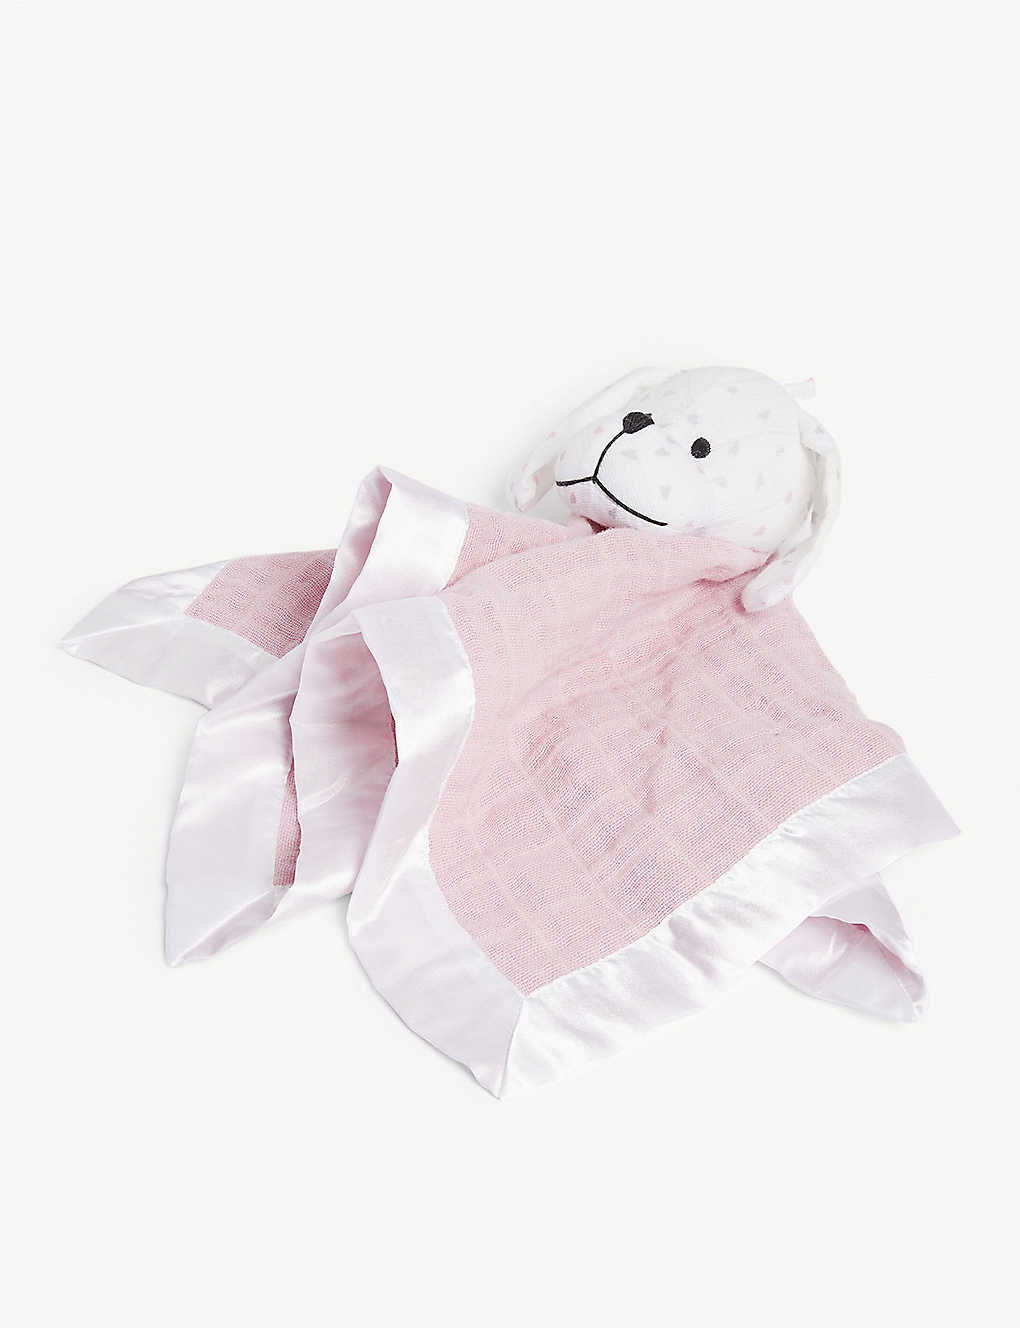 ADEN + ANAIS: Lovely Reverie Musy Mate Lovey cotton blanket